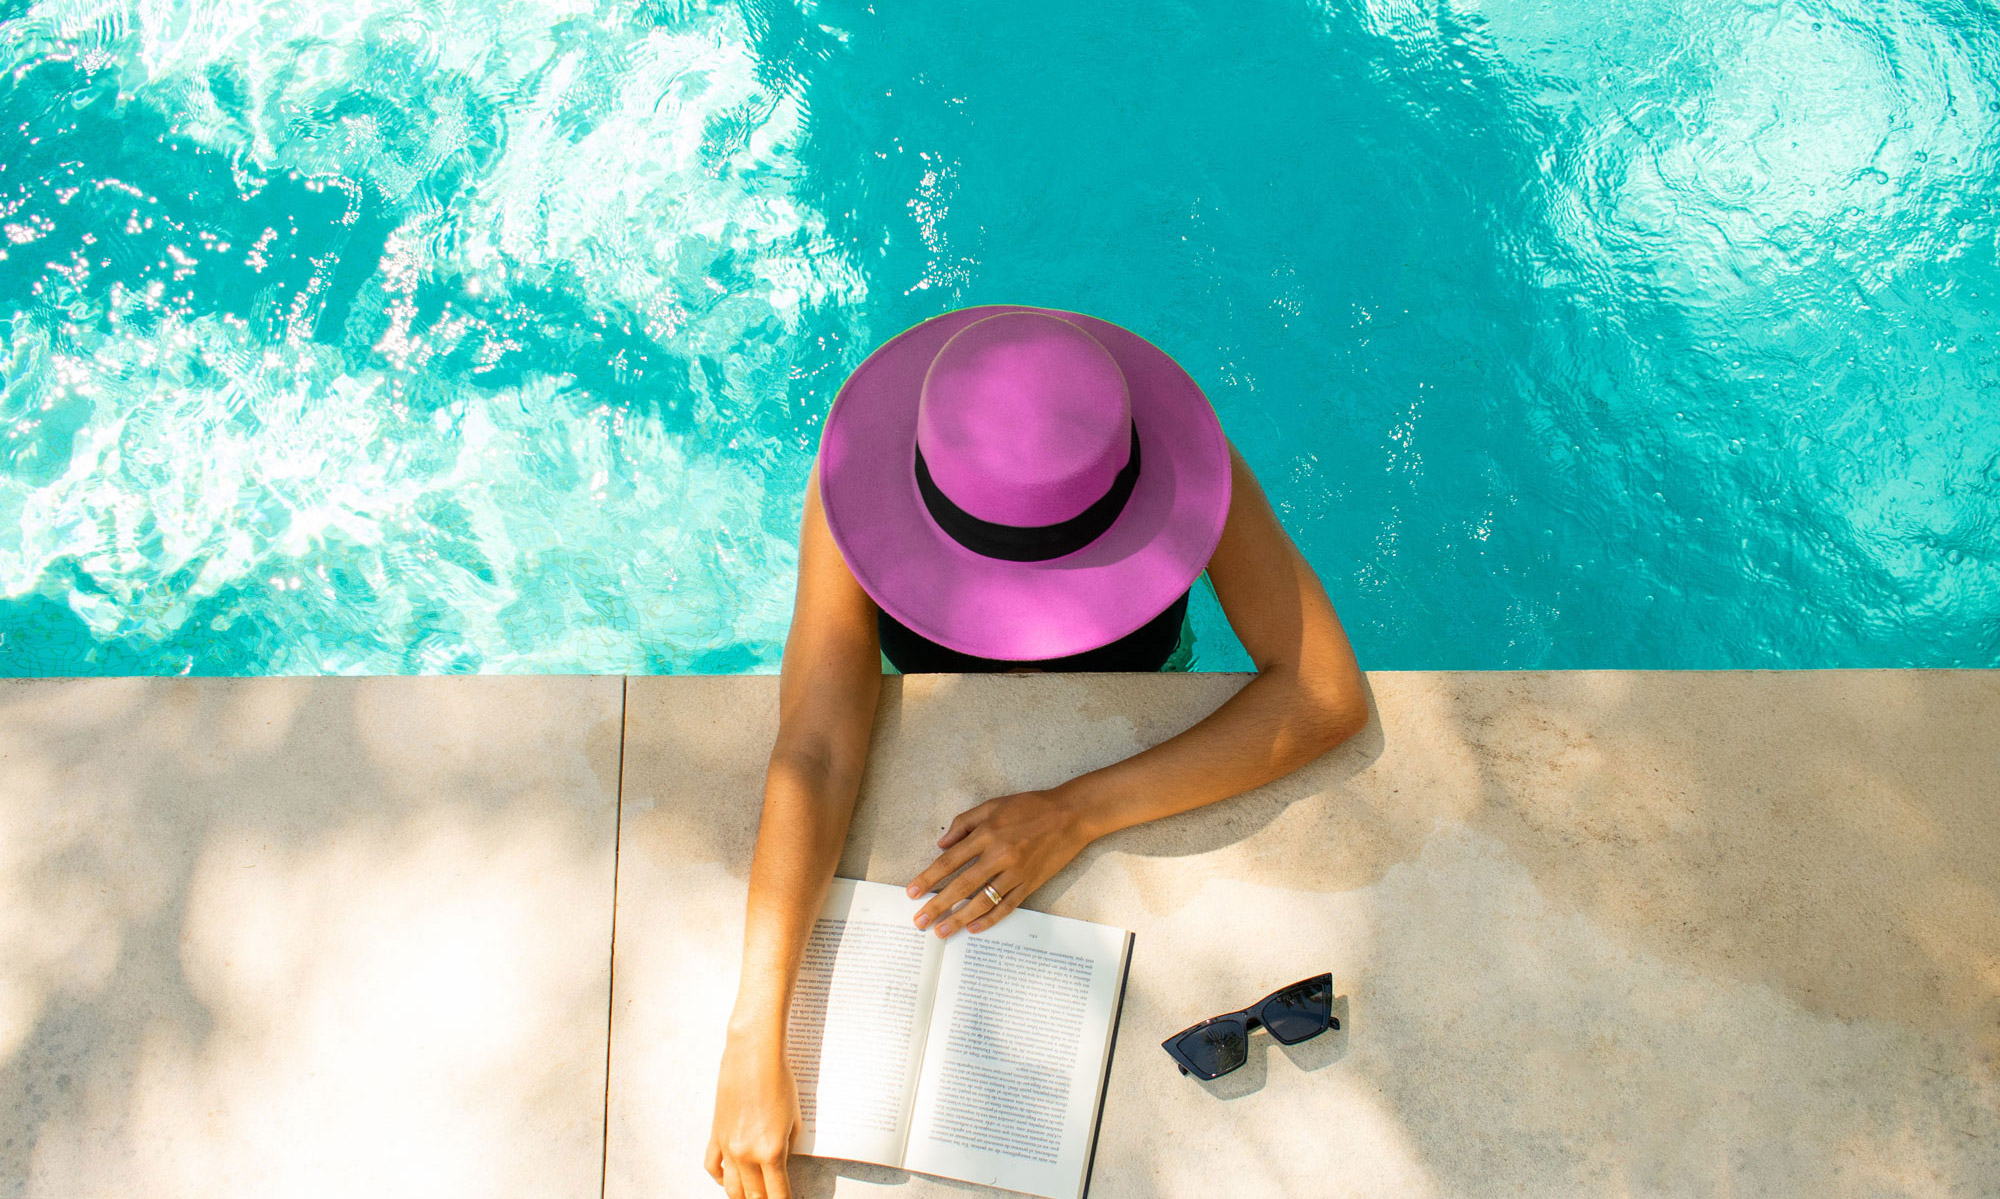 Woman wearing hat in pool reading a book